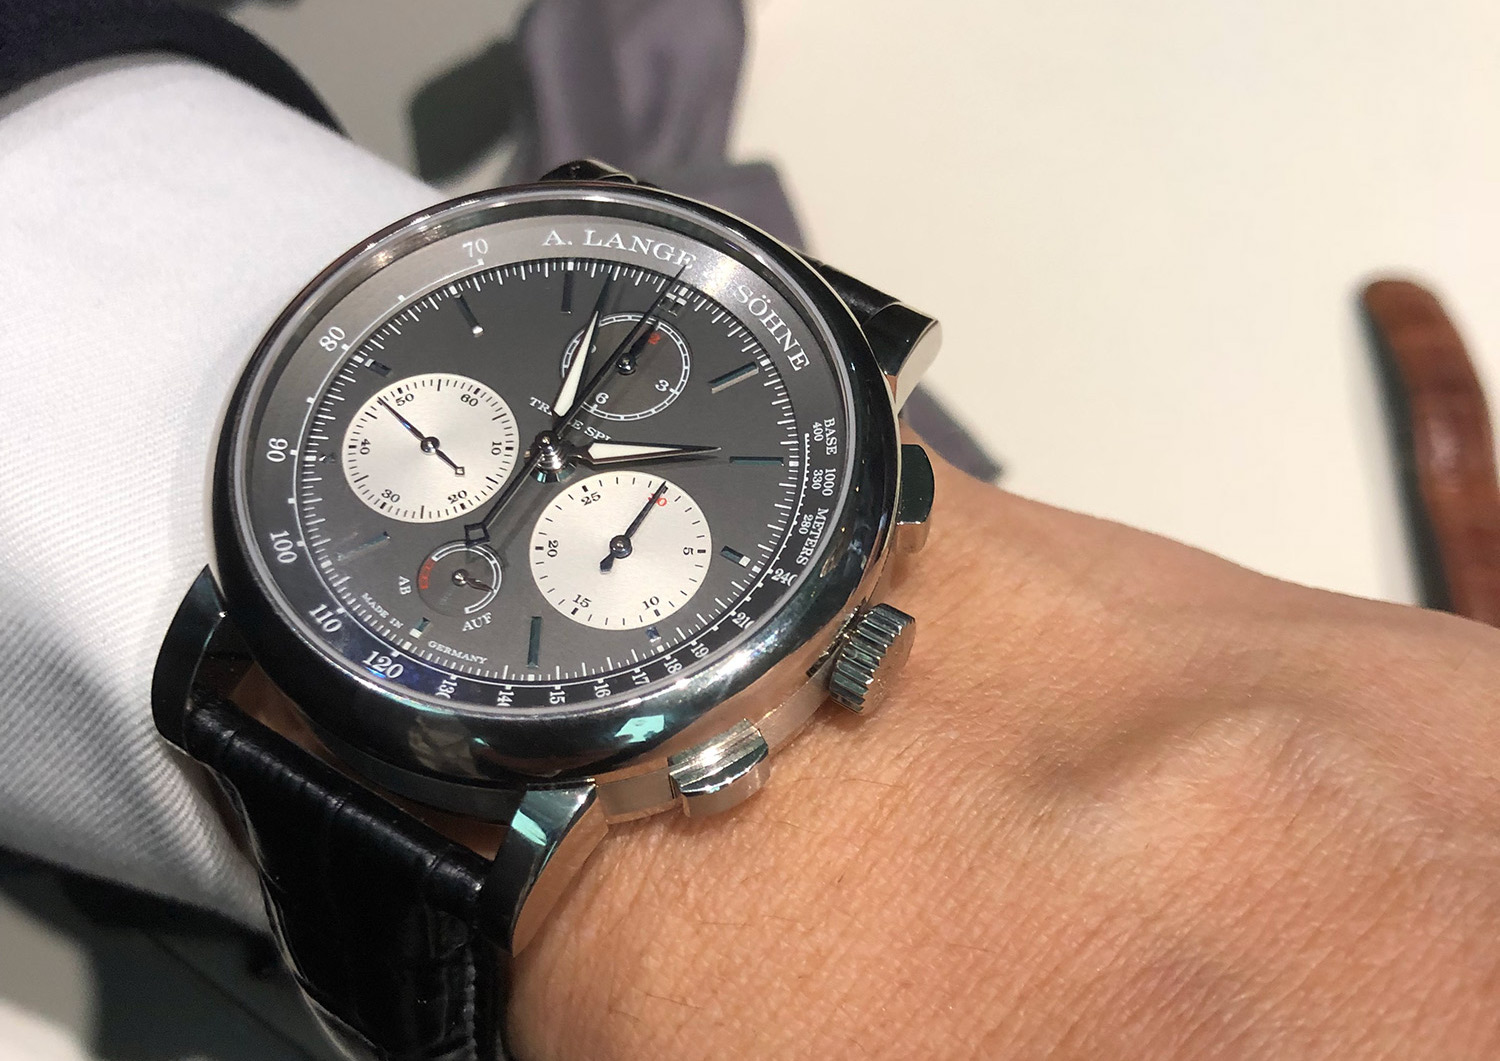 A. Lange & Söhne победили в трех номинациях на Watch Of The Year 2018 от польского журнала CH24.PL